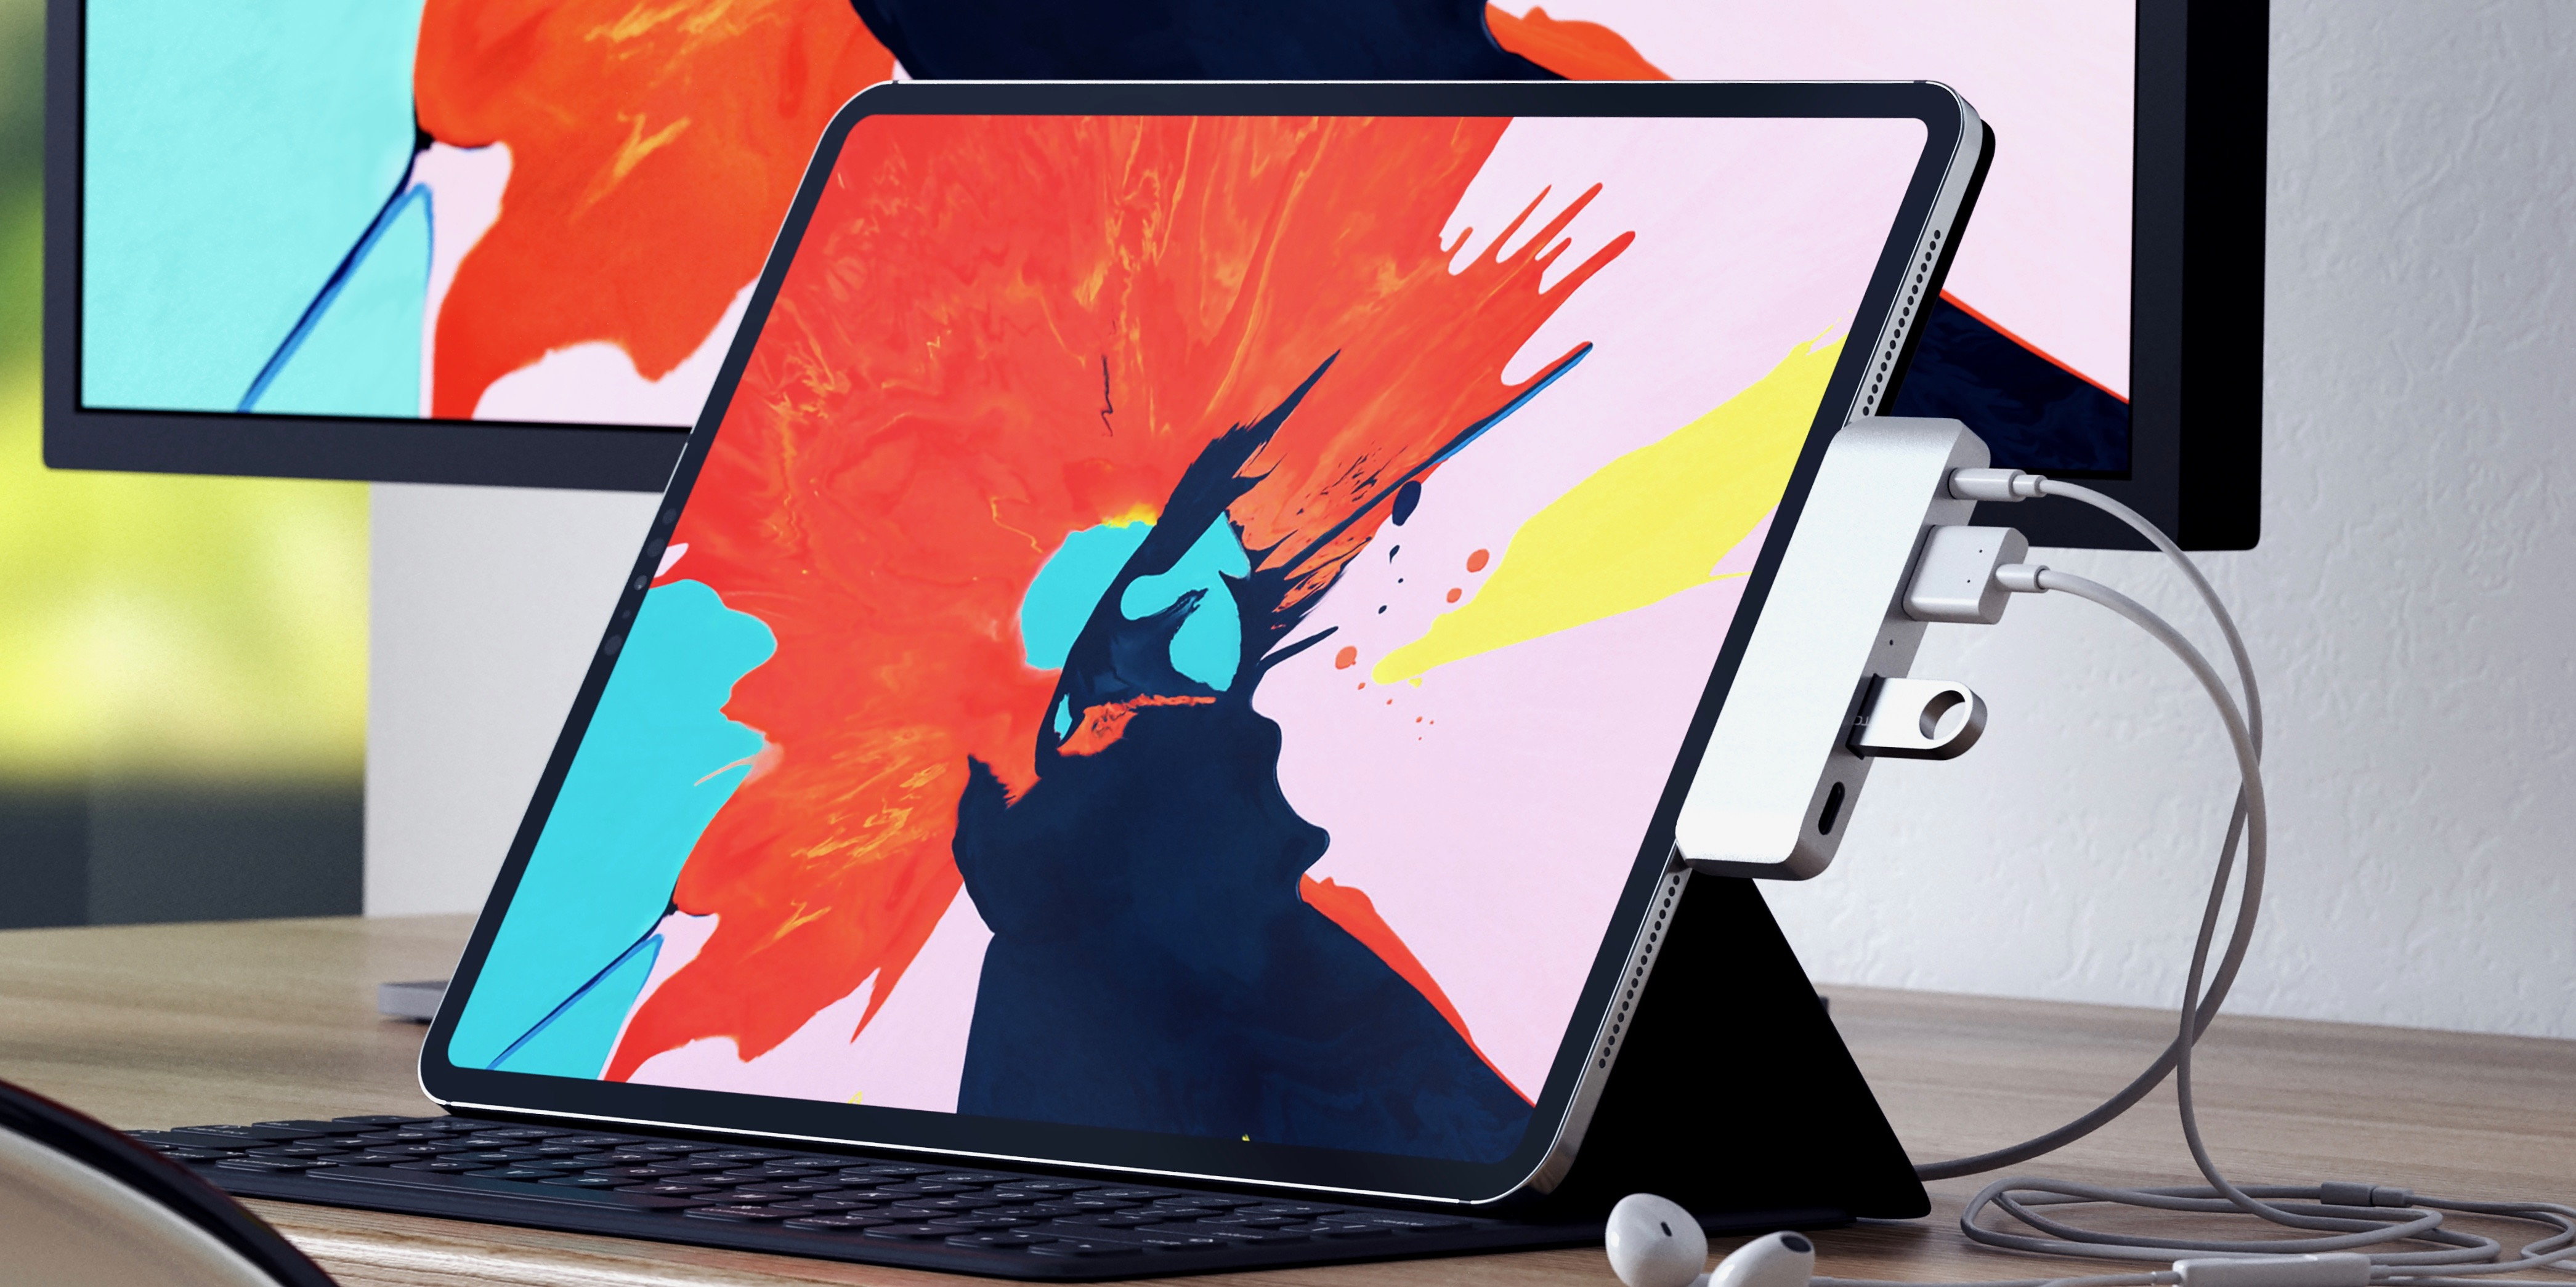 photo image Satechi's iPad Pro USB-C hub with HDMI, USB-A, and headphone port launches with $45 promo